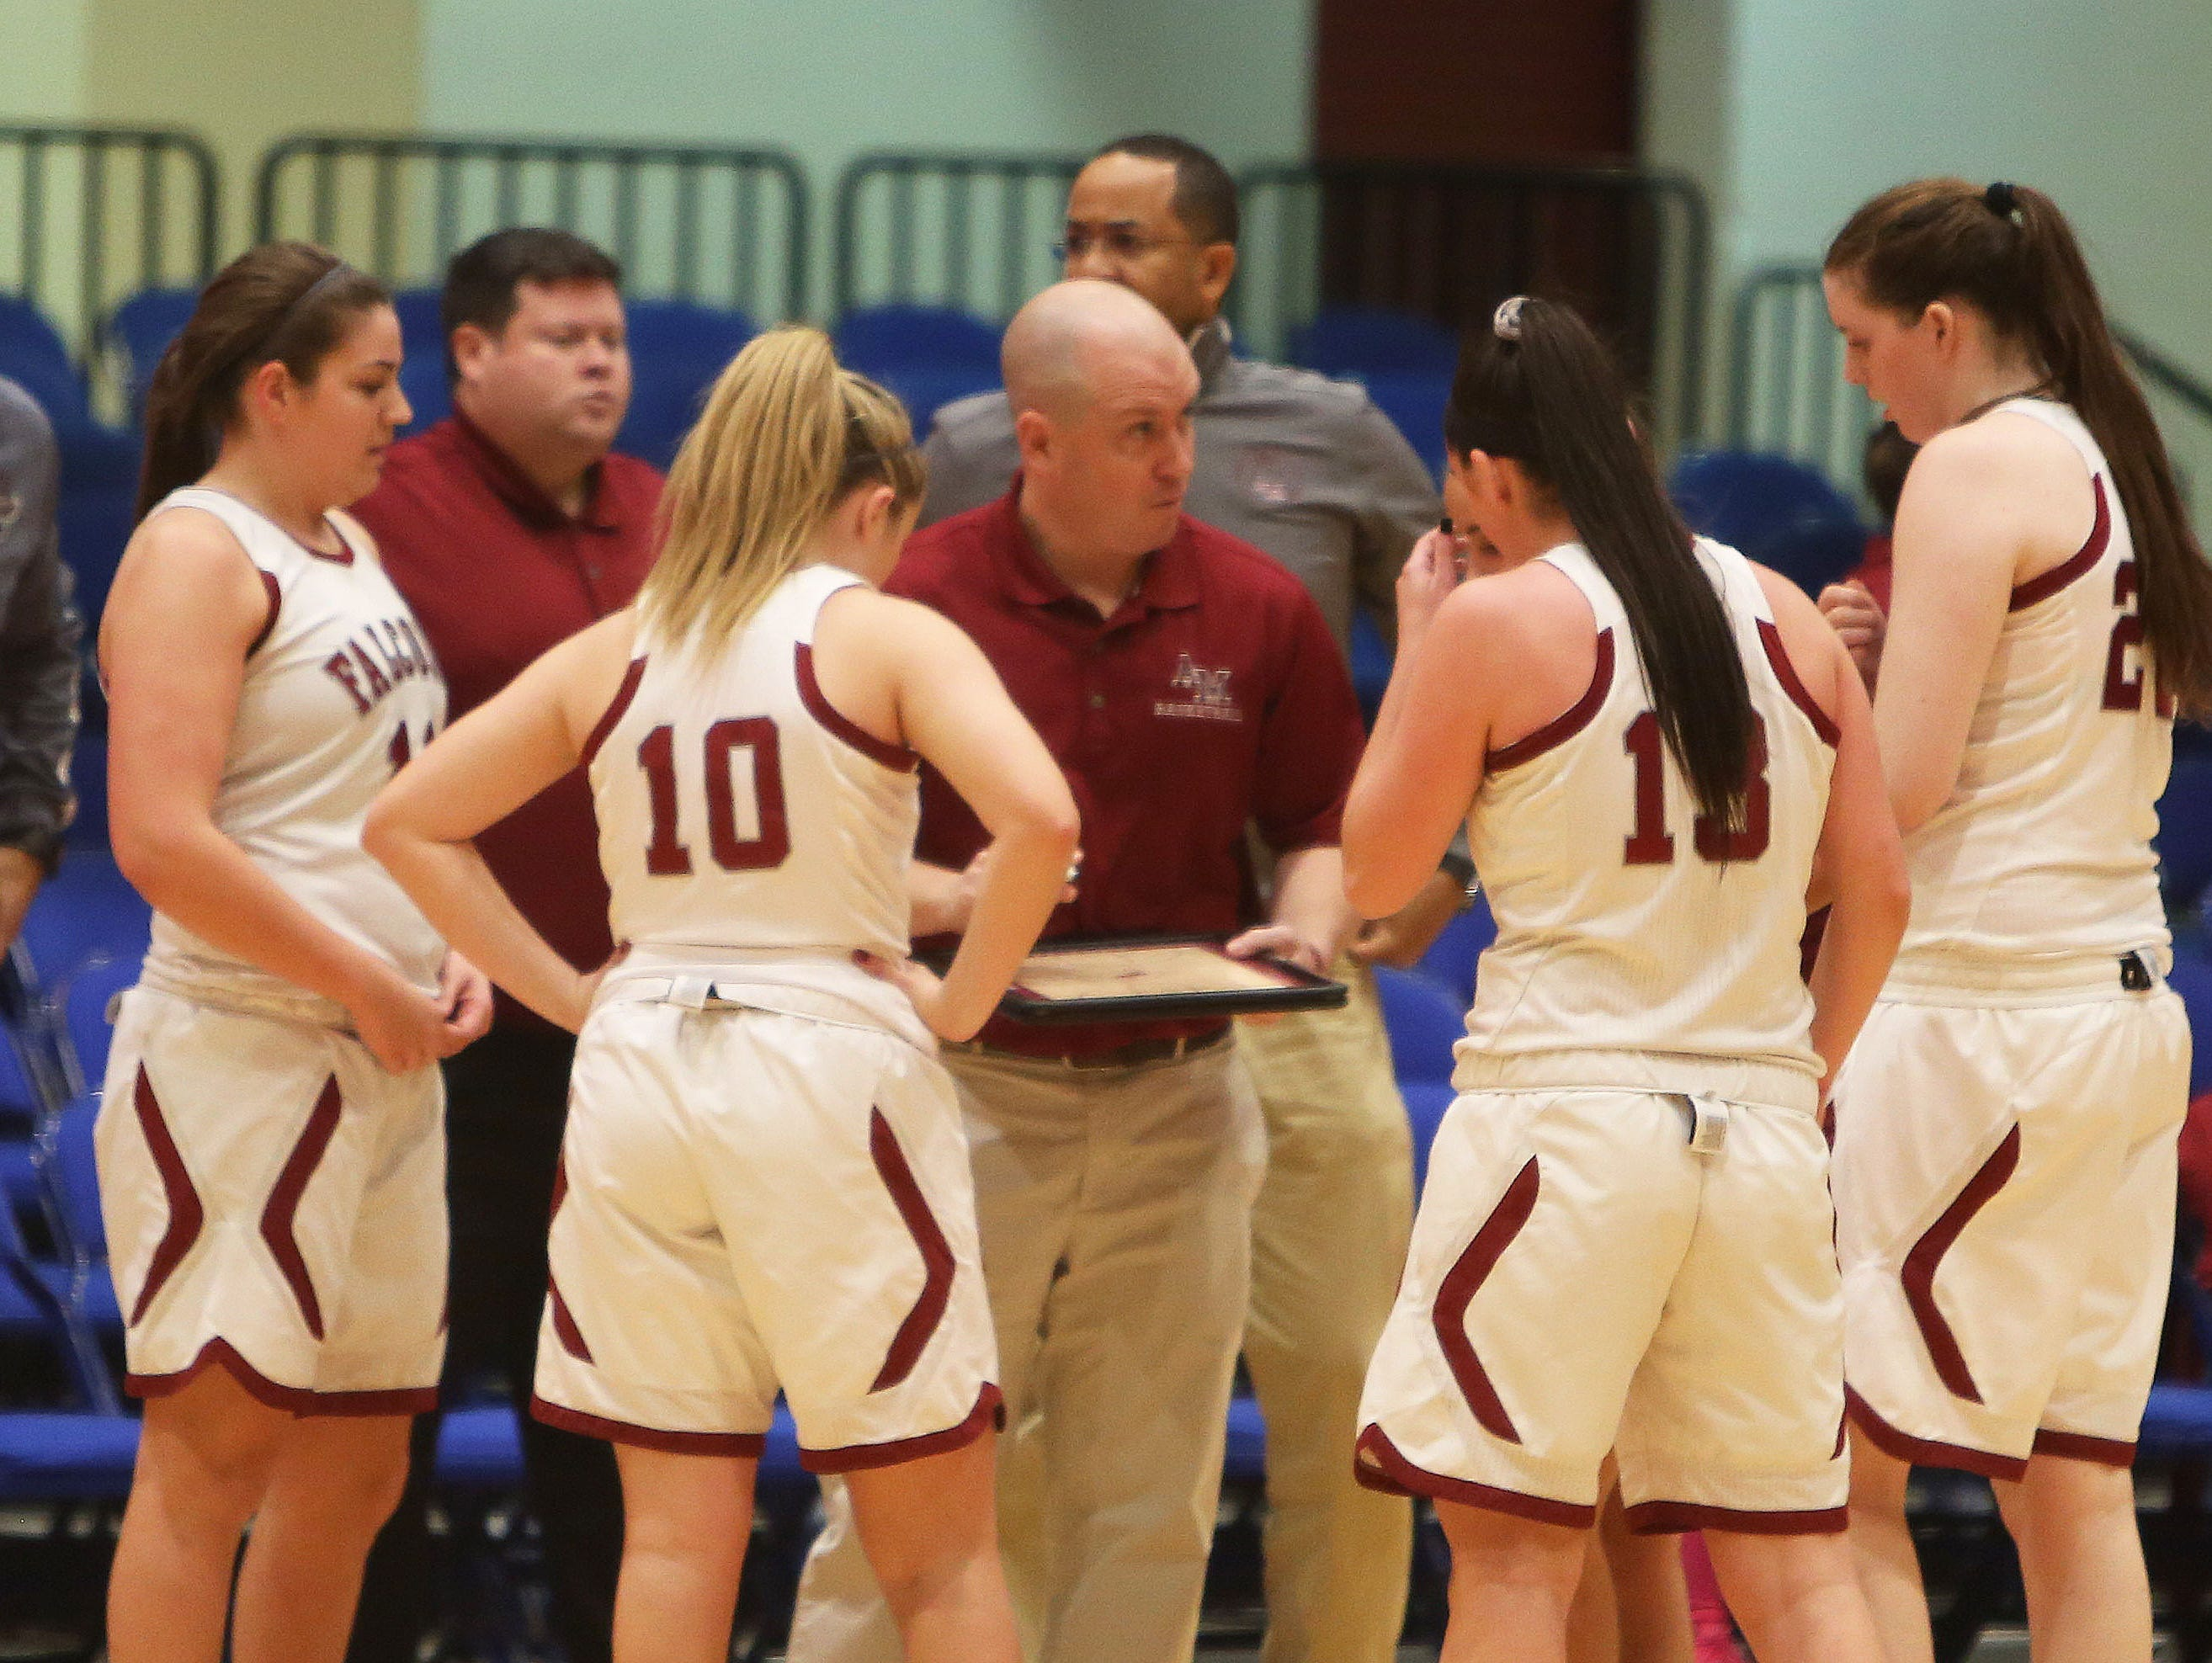 Abertus Magnus girls basketball will compete in Class AA for the first time in program history this season.